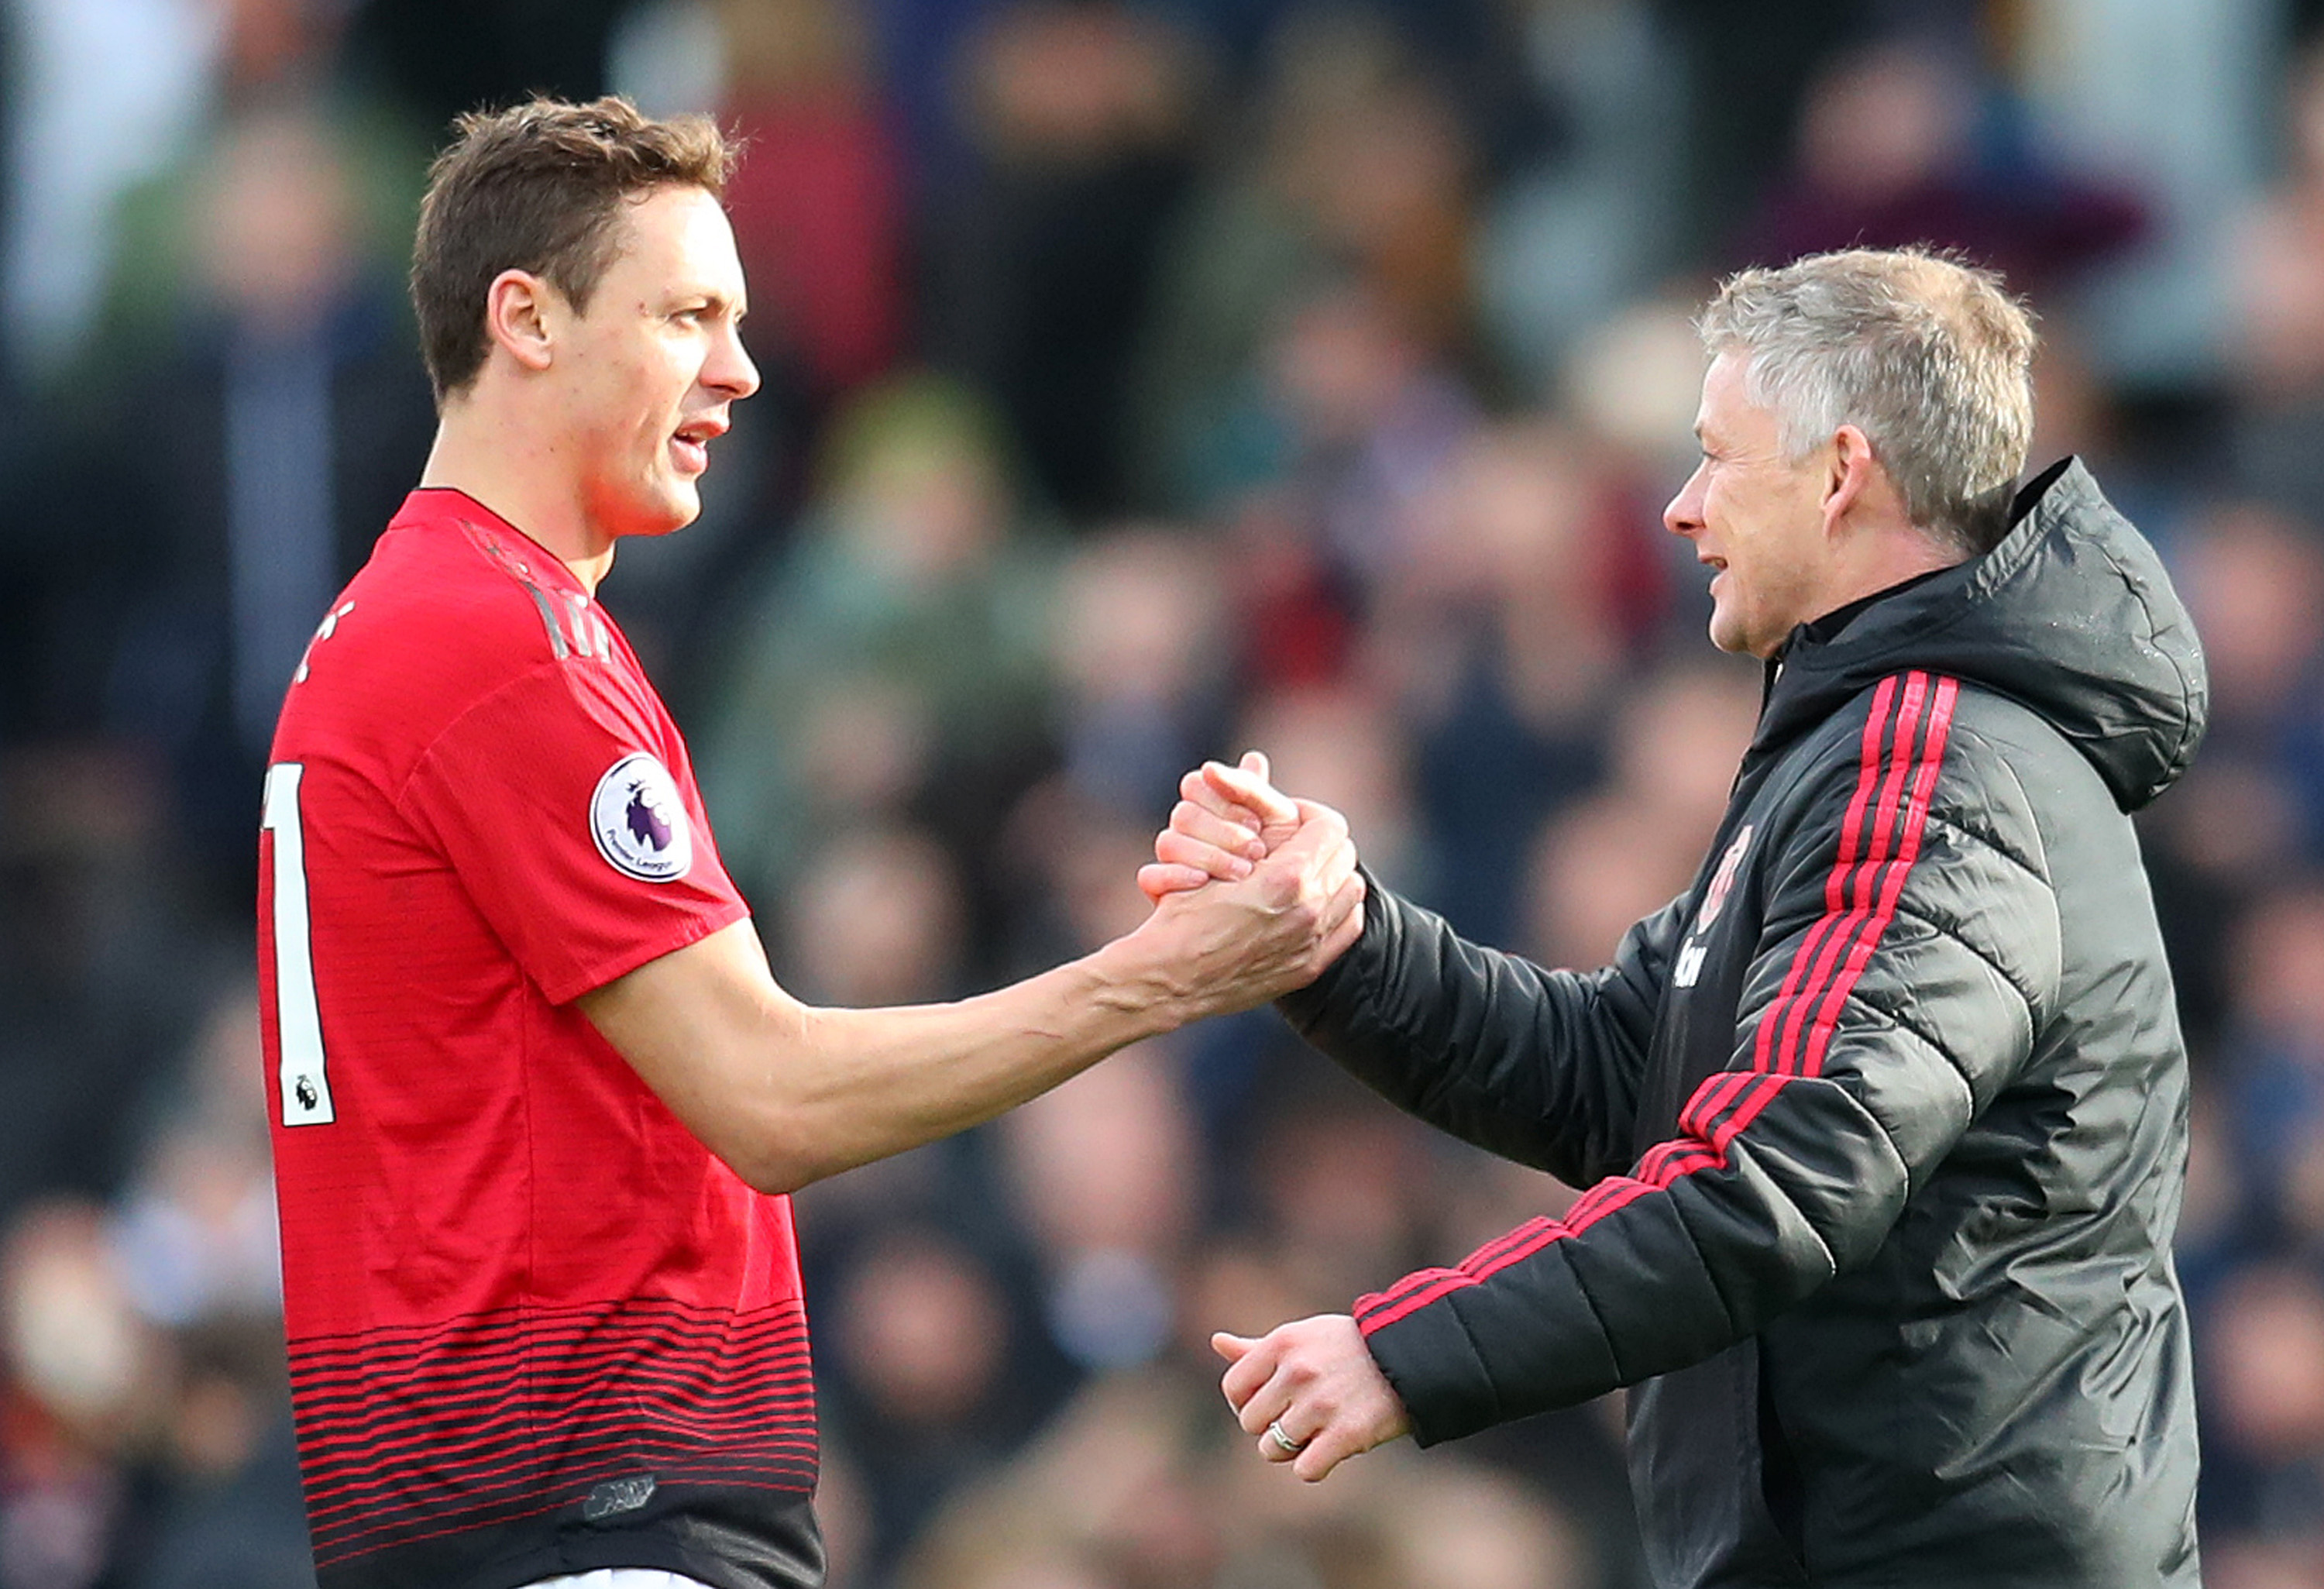 Nemanja Matić's physical limitations are coming to the fore once again